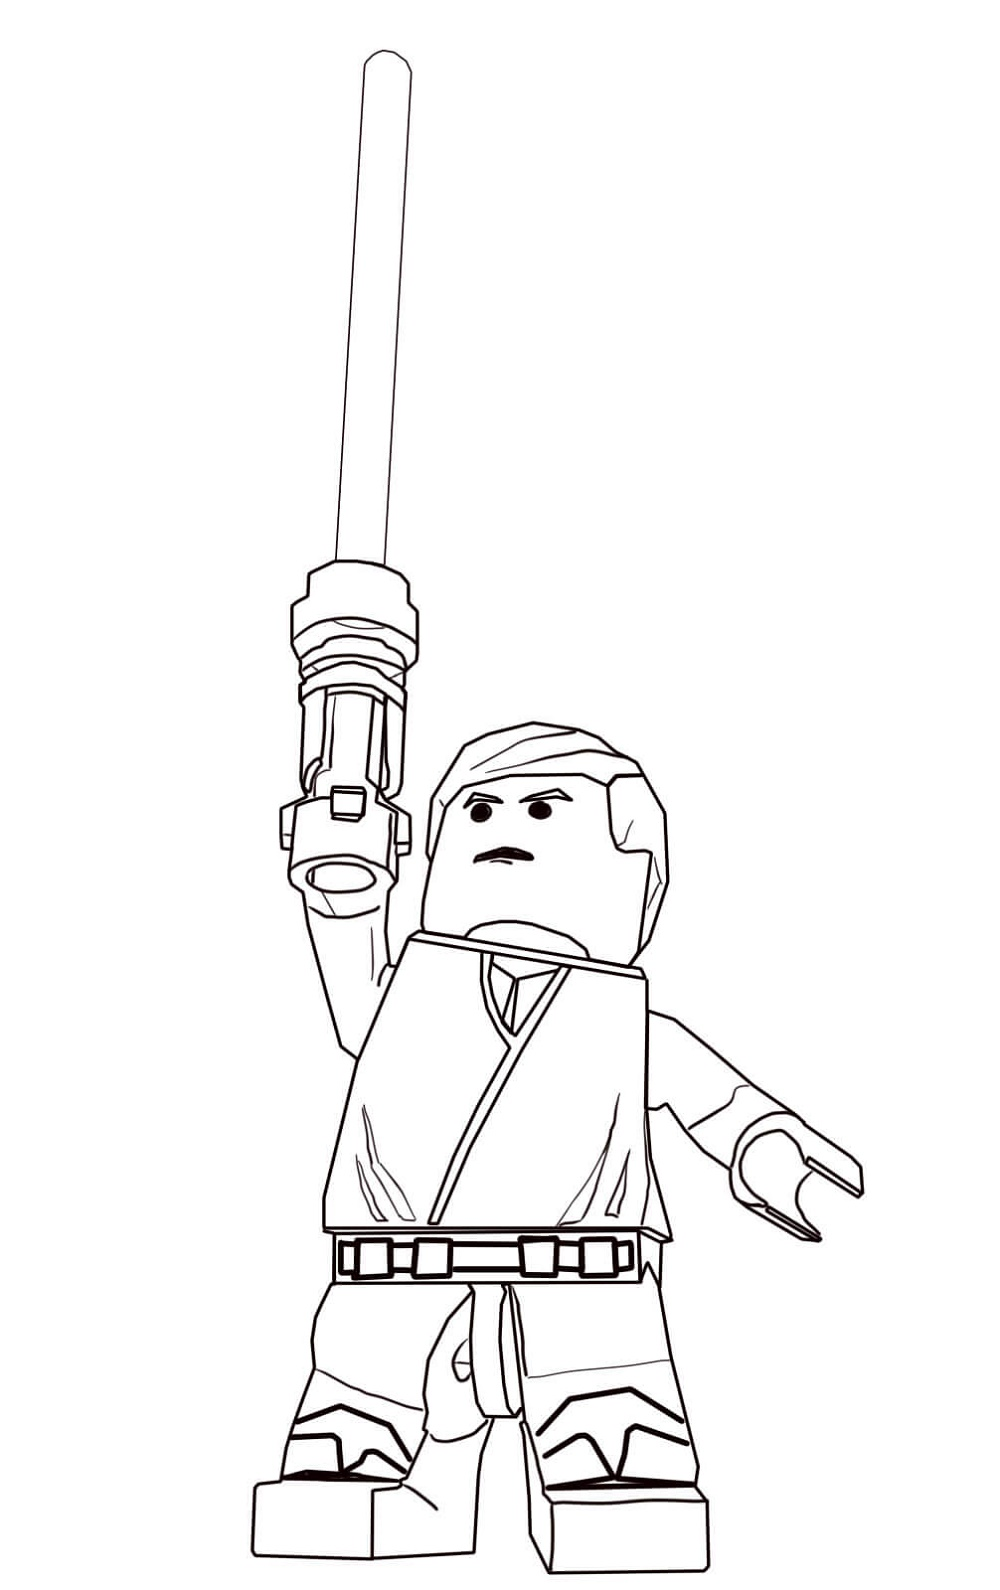 Lego Star Wars Coloring Pages Luke Skywalker